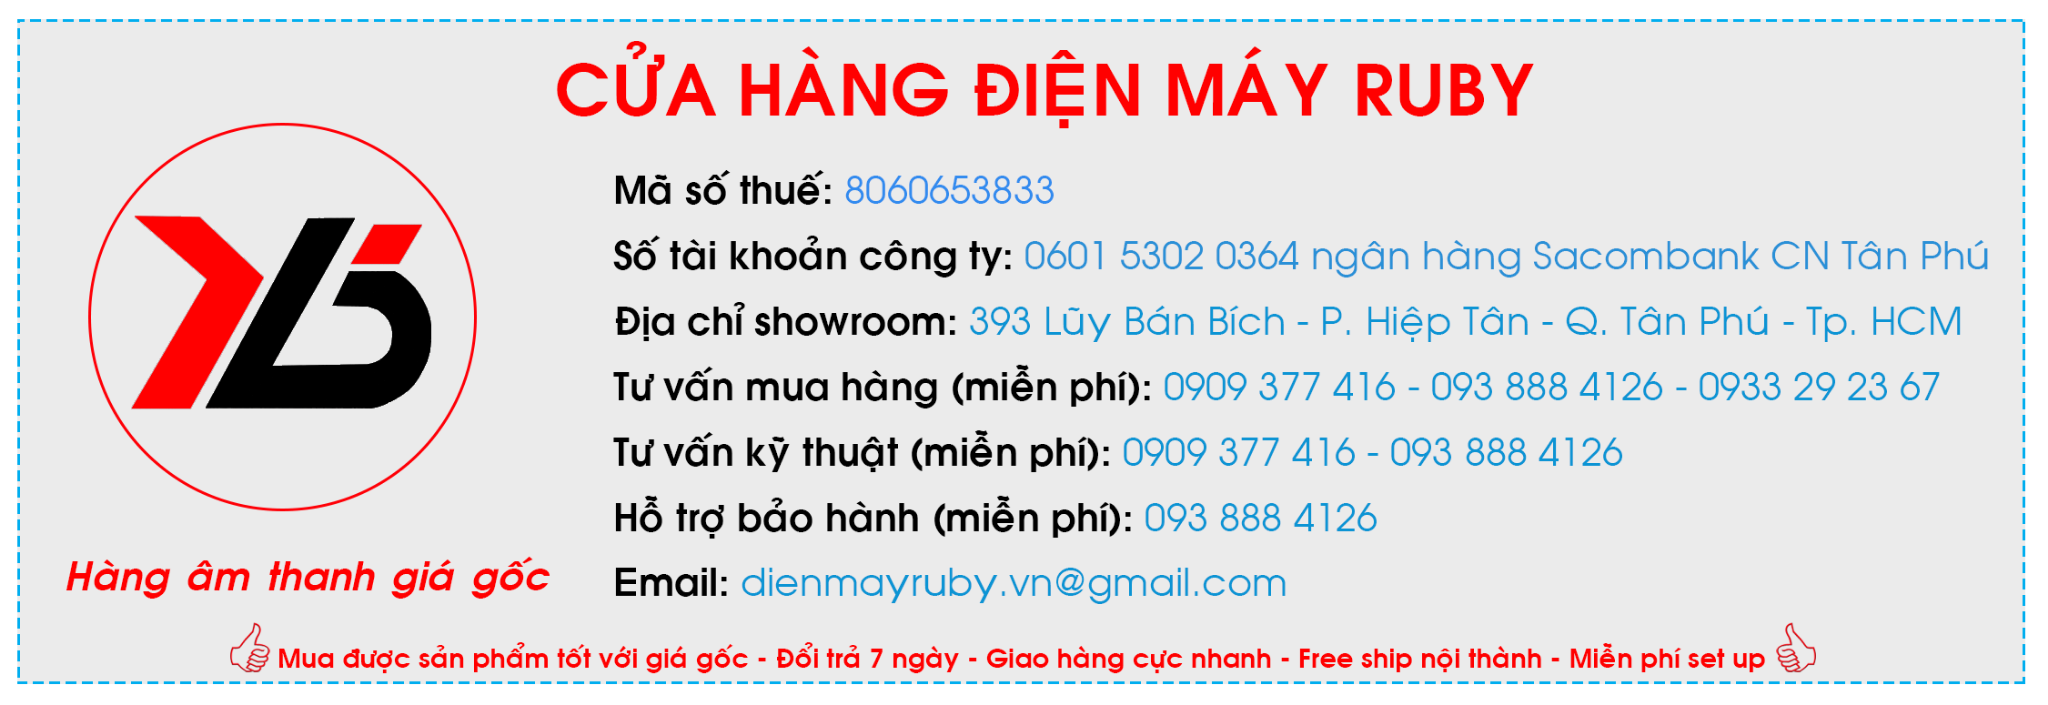 dai-tan-so-am-thanh-la-gi?-dac-diem-cua-dai-tan-so-am-thanh